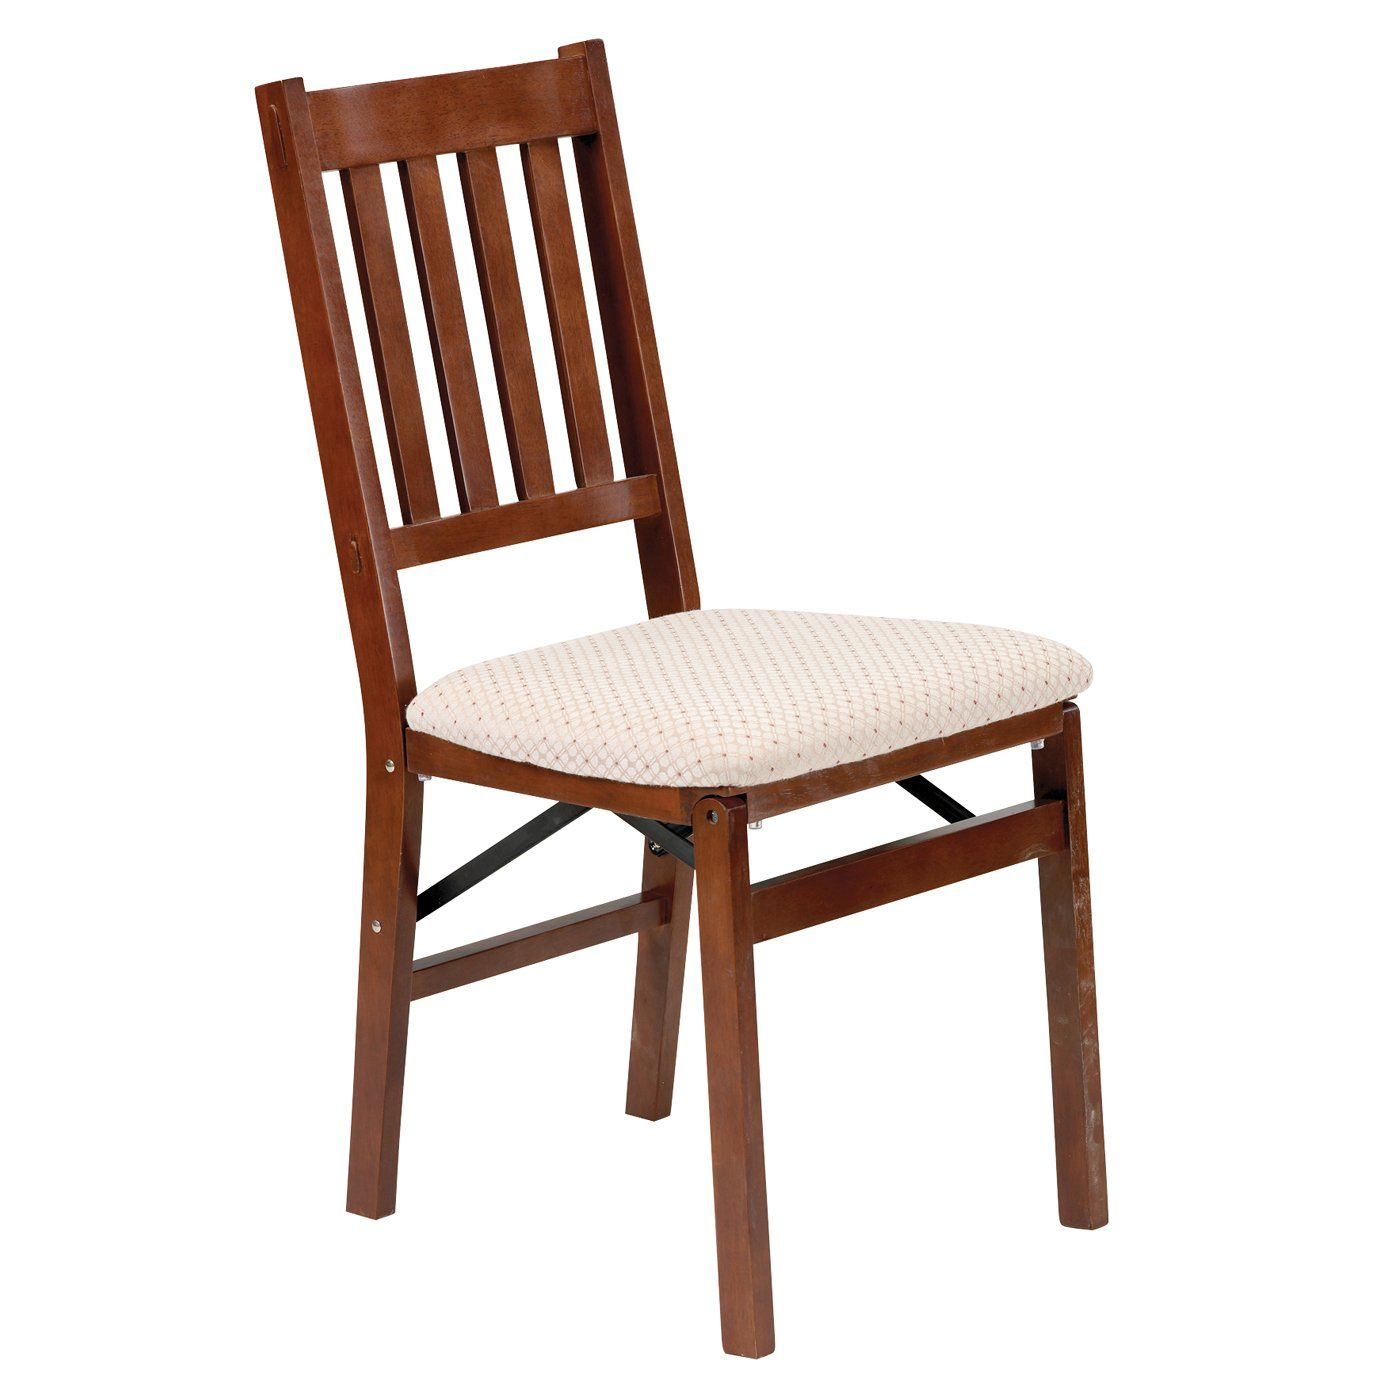 Stakmore Folding Chair Set Of 2 For 118 Via Atg Stores Online Or At Costco For 29 99 Each With Plain Folding Dining Chairs Oak Dining Chairs Folding Chair